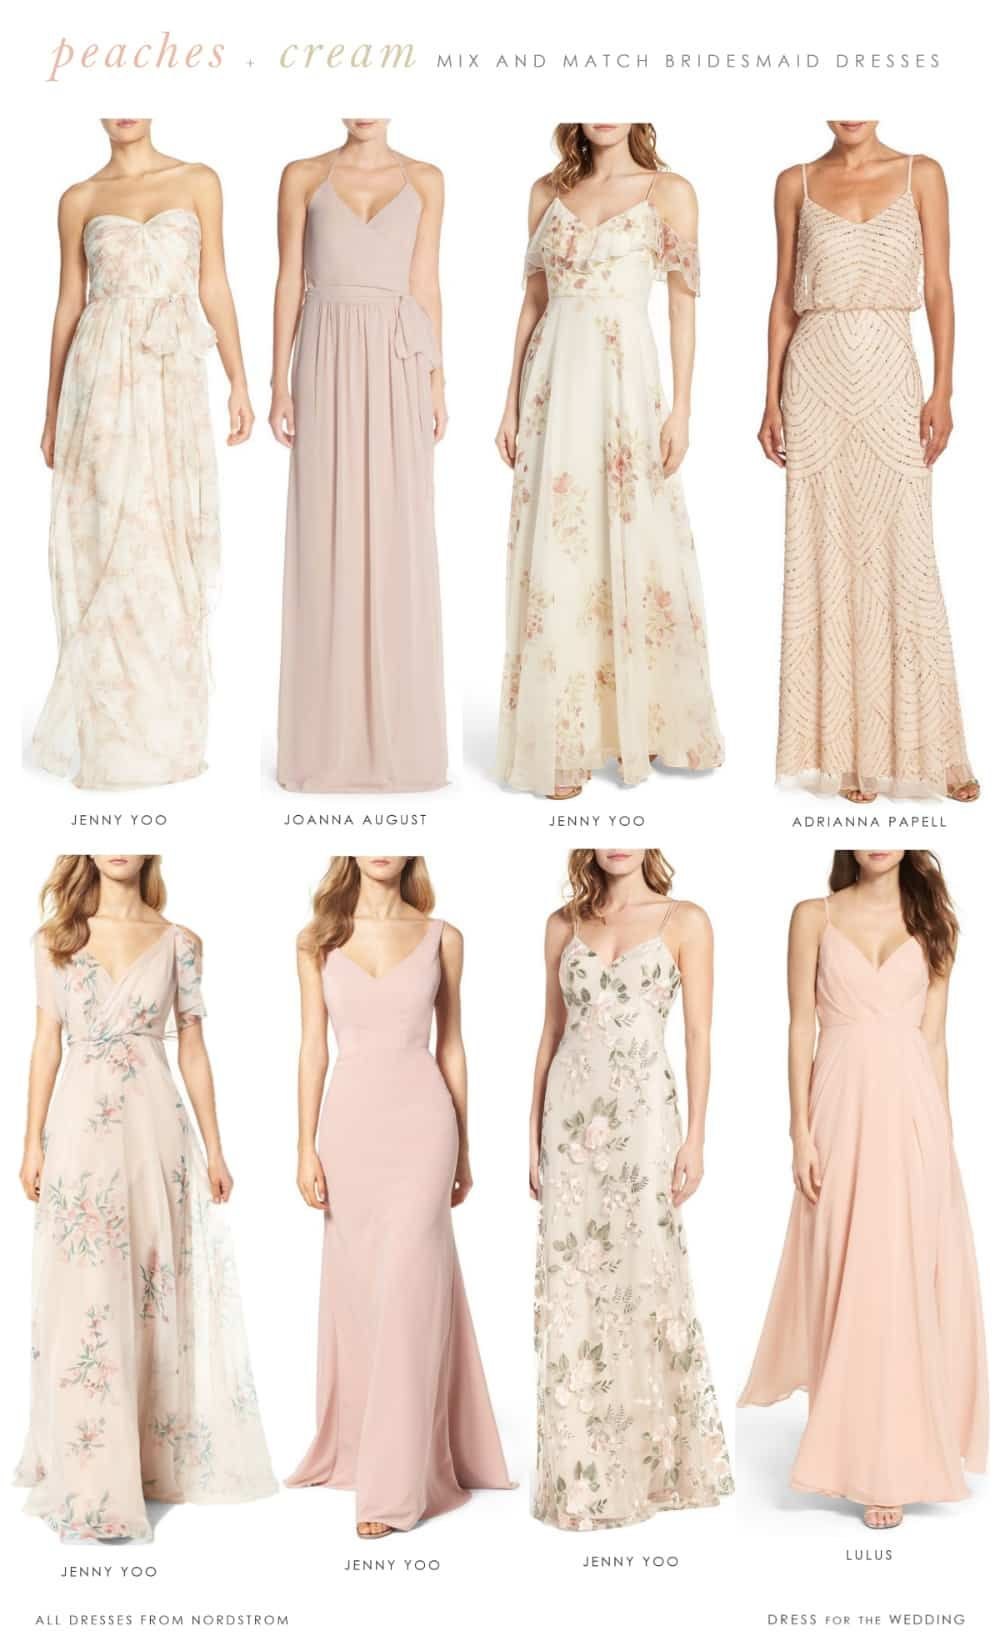 238291c174d0 Floral, Peach, Blush and Cream Bridesmaid Dresses to Mix and Match | Dress  for the Wedding